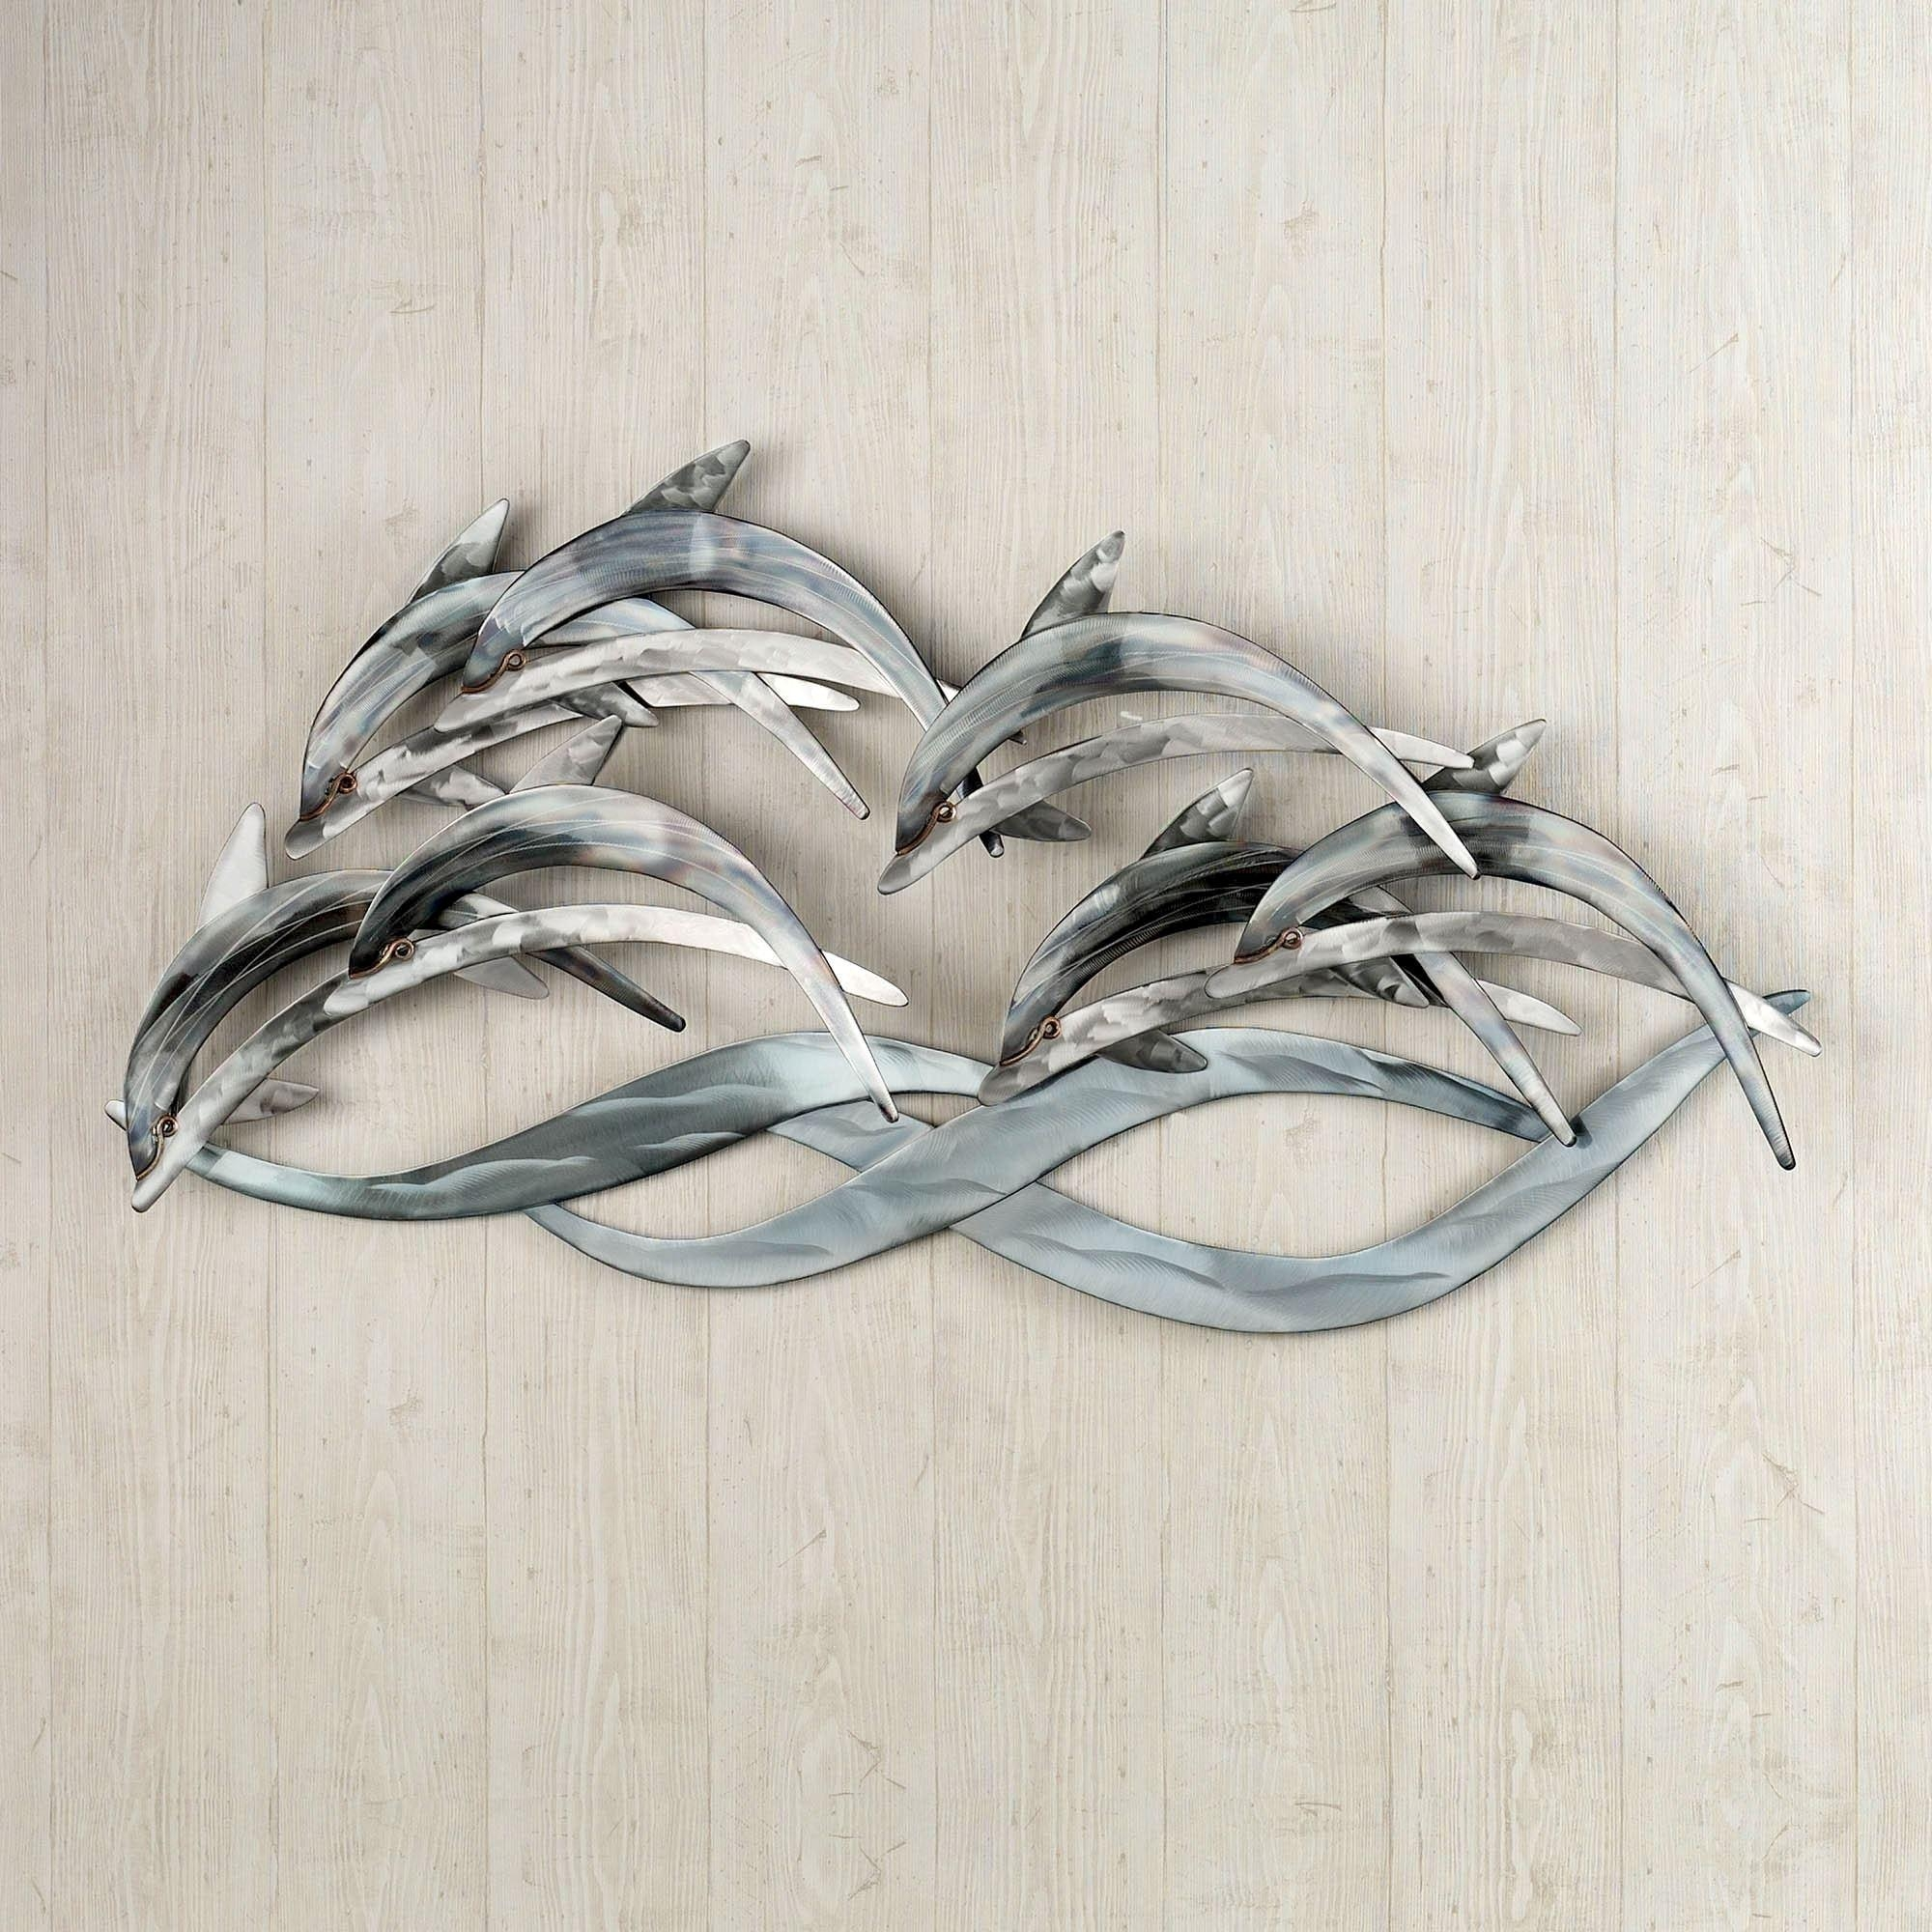 Wave Dancers Dolphin Stainless Steel Wall Sculpture Pertaining To Stainless Steel Outdoor Wall Art (Image 20 of 20)